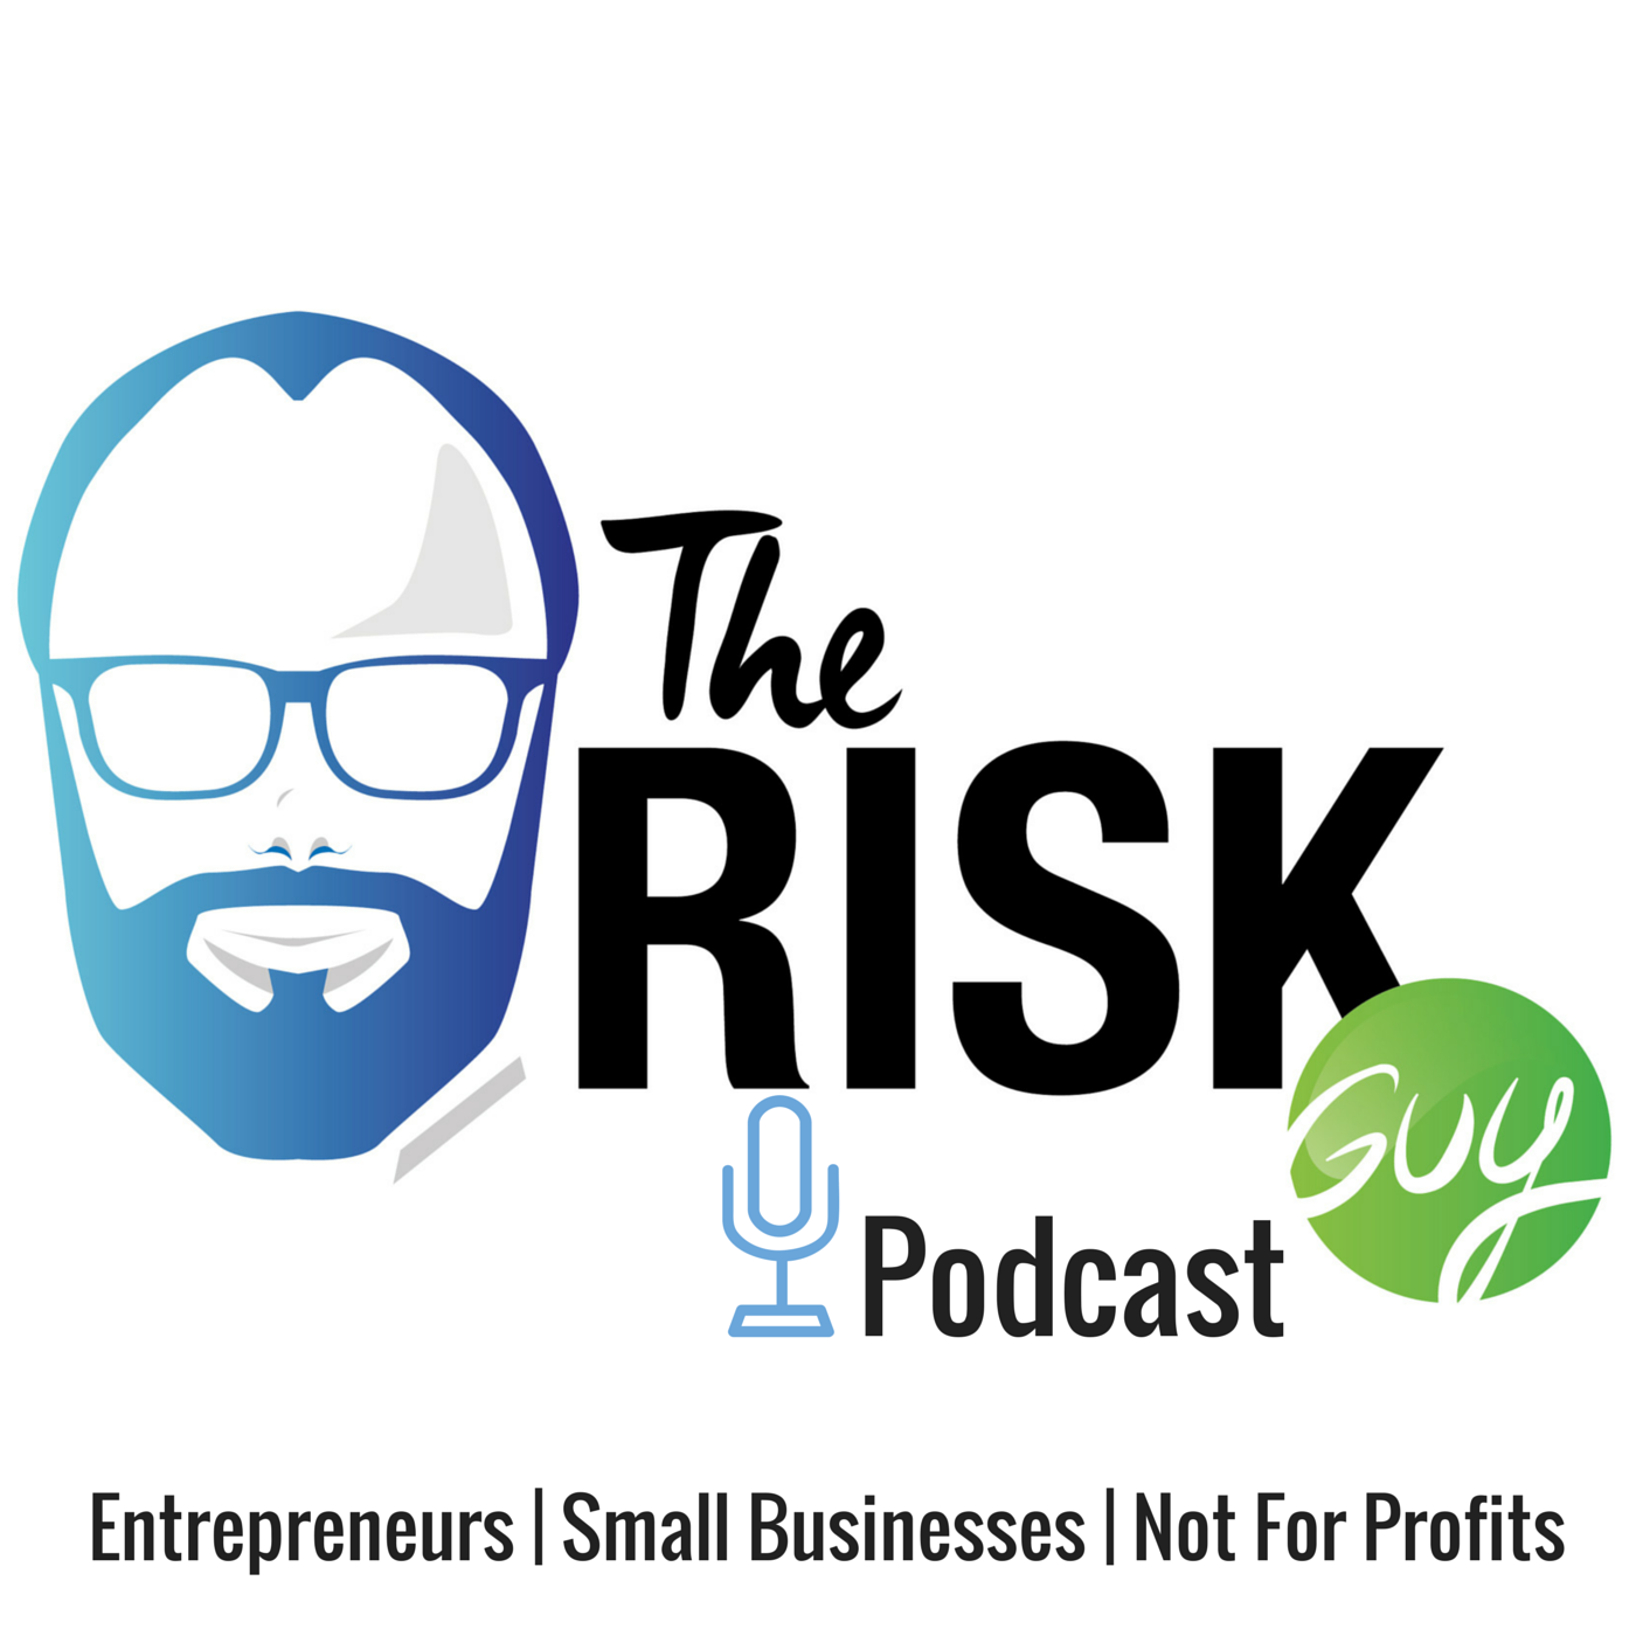 The Risk Guy Podcast